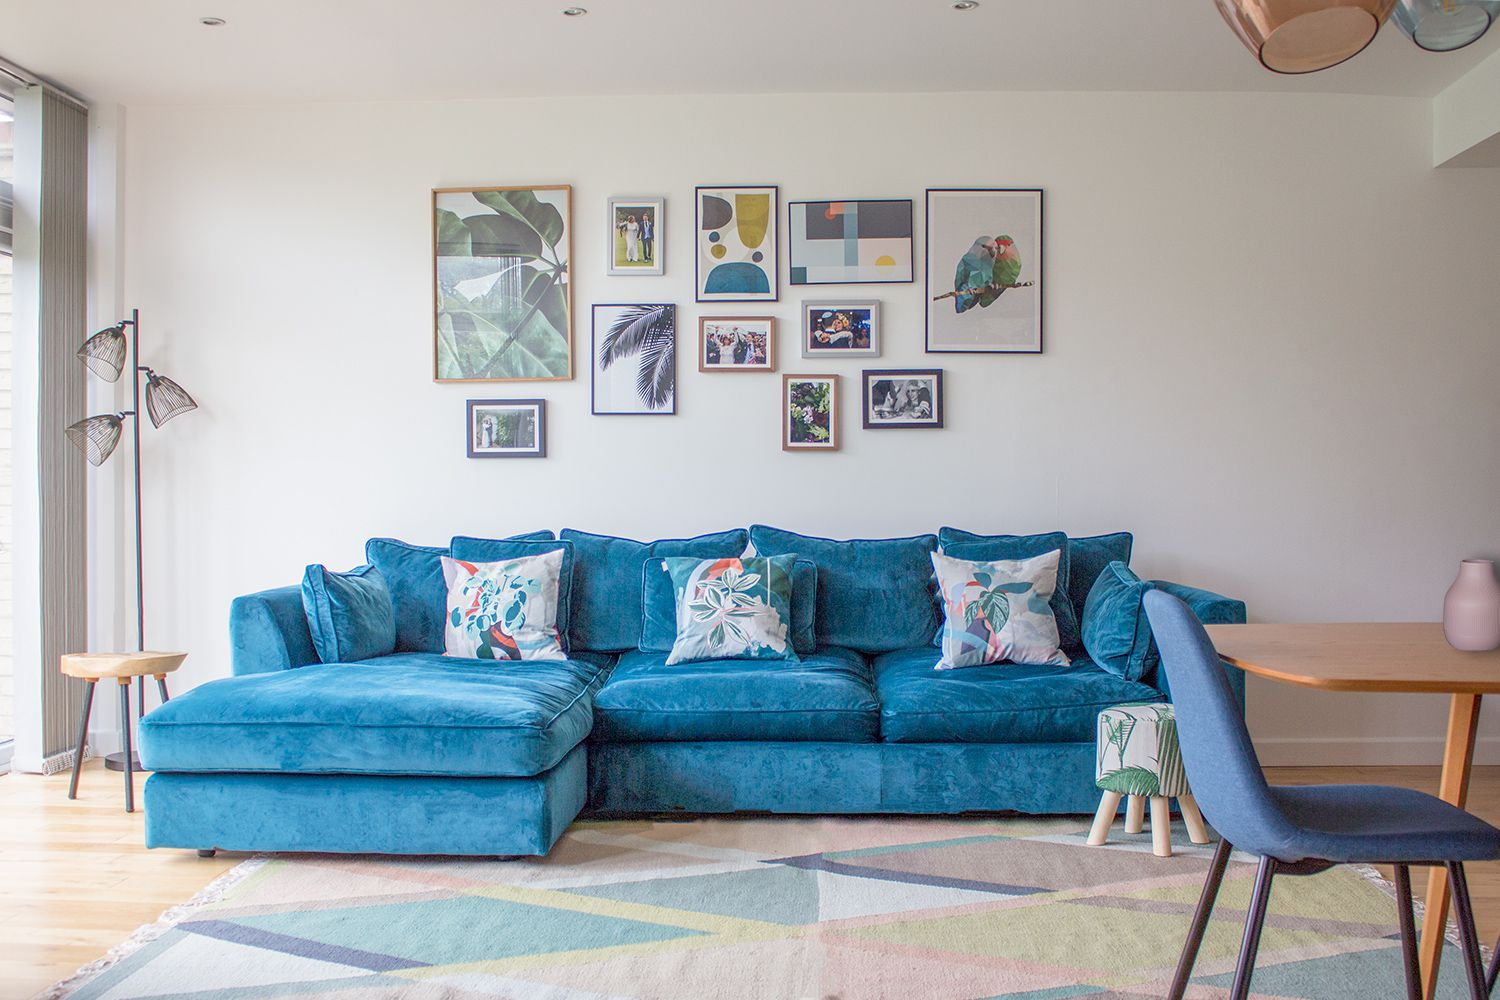 A photo of a teal velvet sofa in a room painted off white and on a colourful geometric rug.